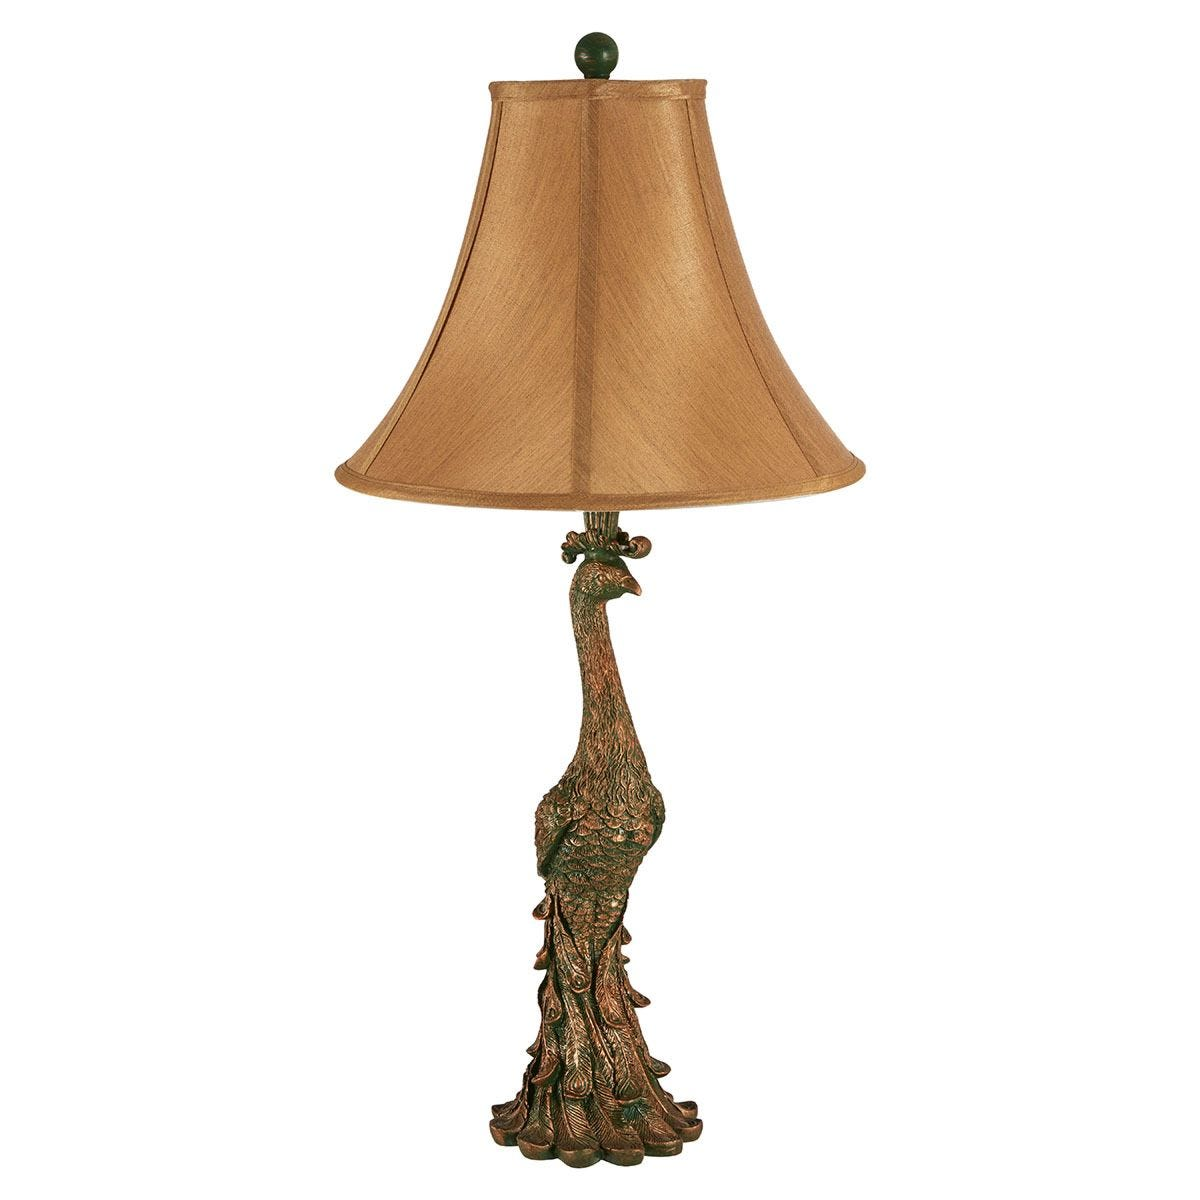 Premier Housewares Peacock Table Lamp in Bronze Finish with Beige Shade